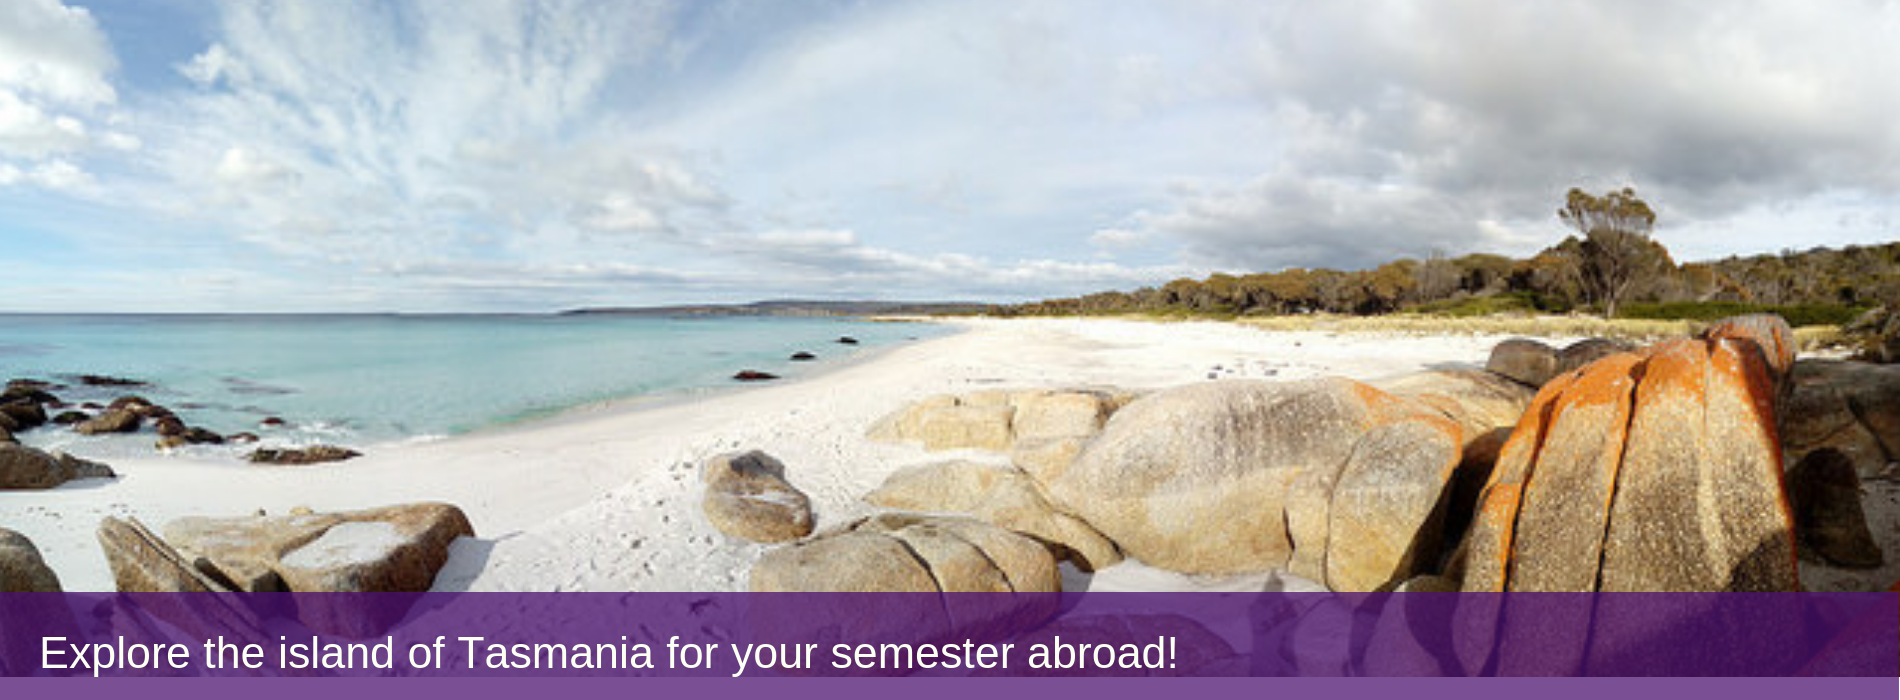 Explore the island of Tasmania for your semester abroad!